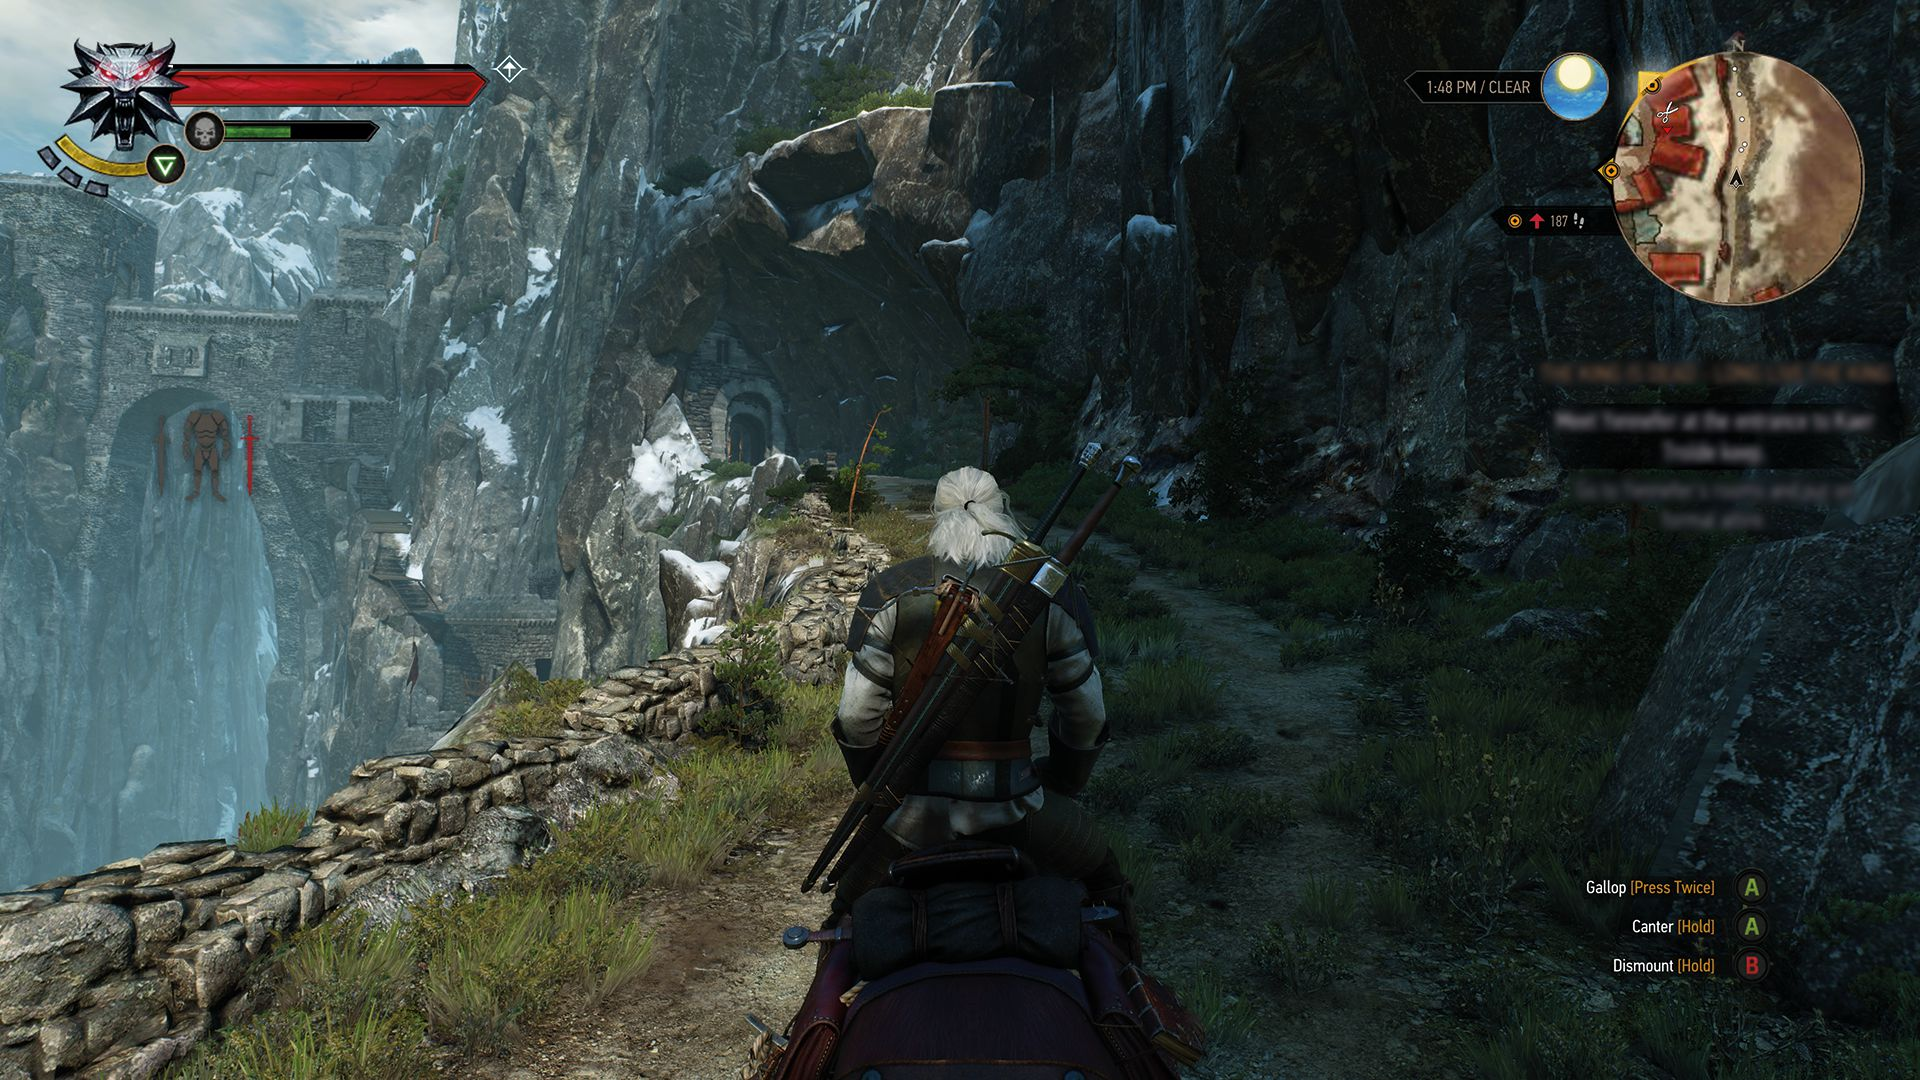 the_witcher_3_wild_hunt_skellige_castles_make_other_castles_look_like_playhuts_1430900918